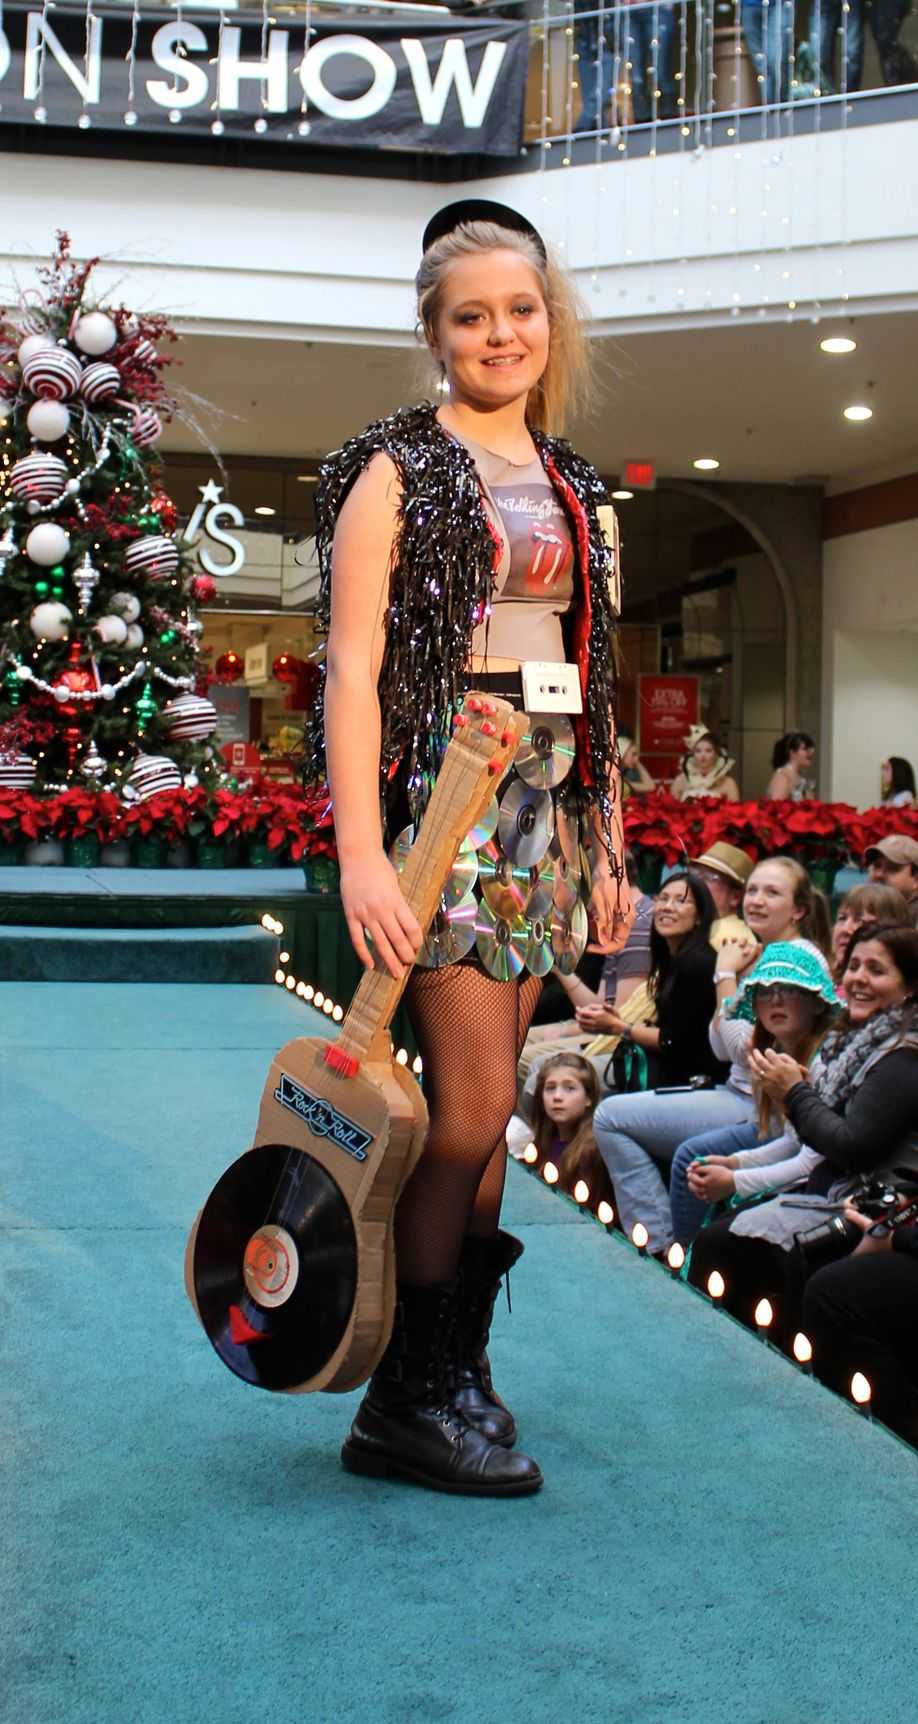 Annual Re-Fashion Show inspires creative recycling